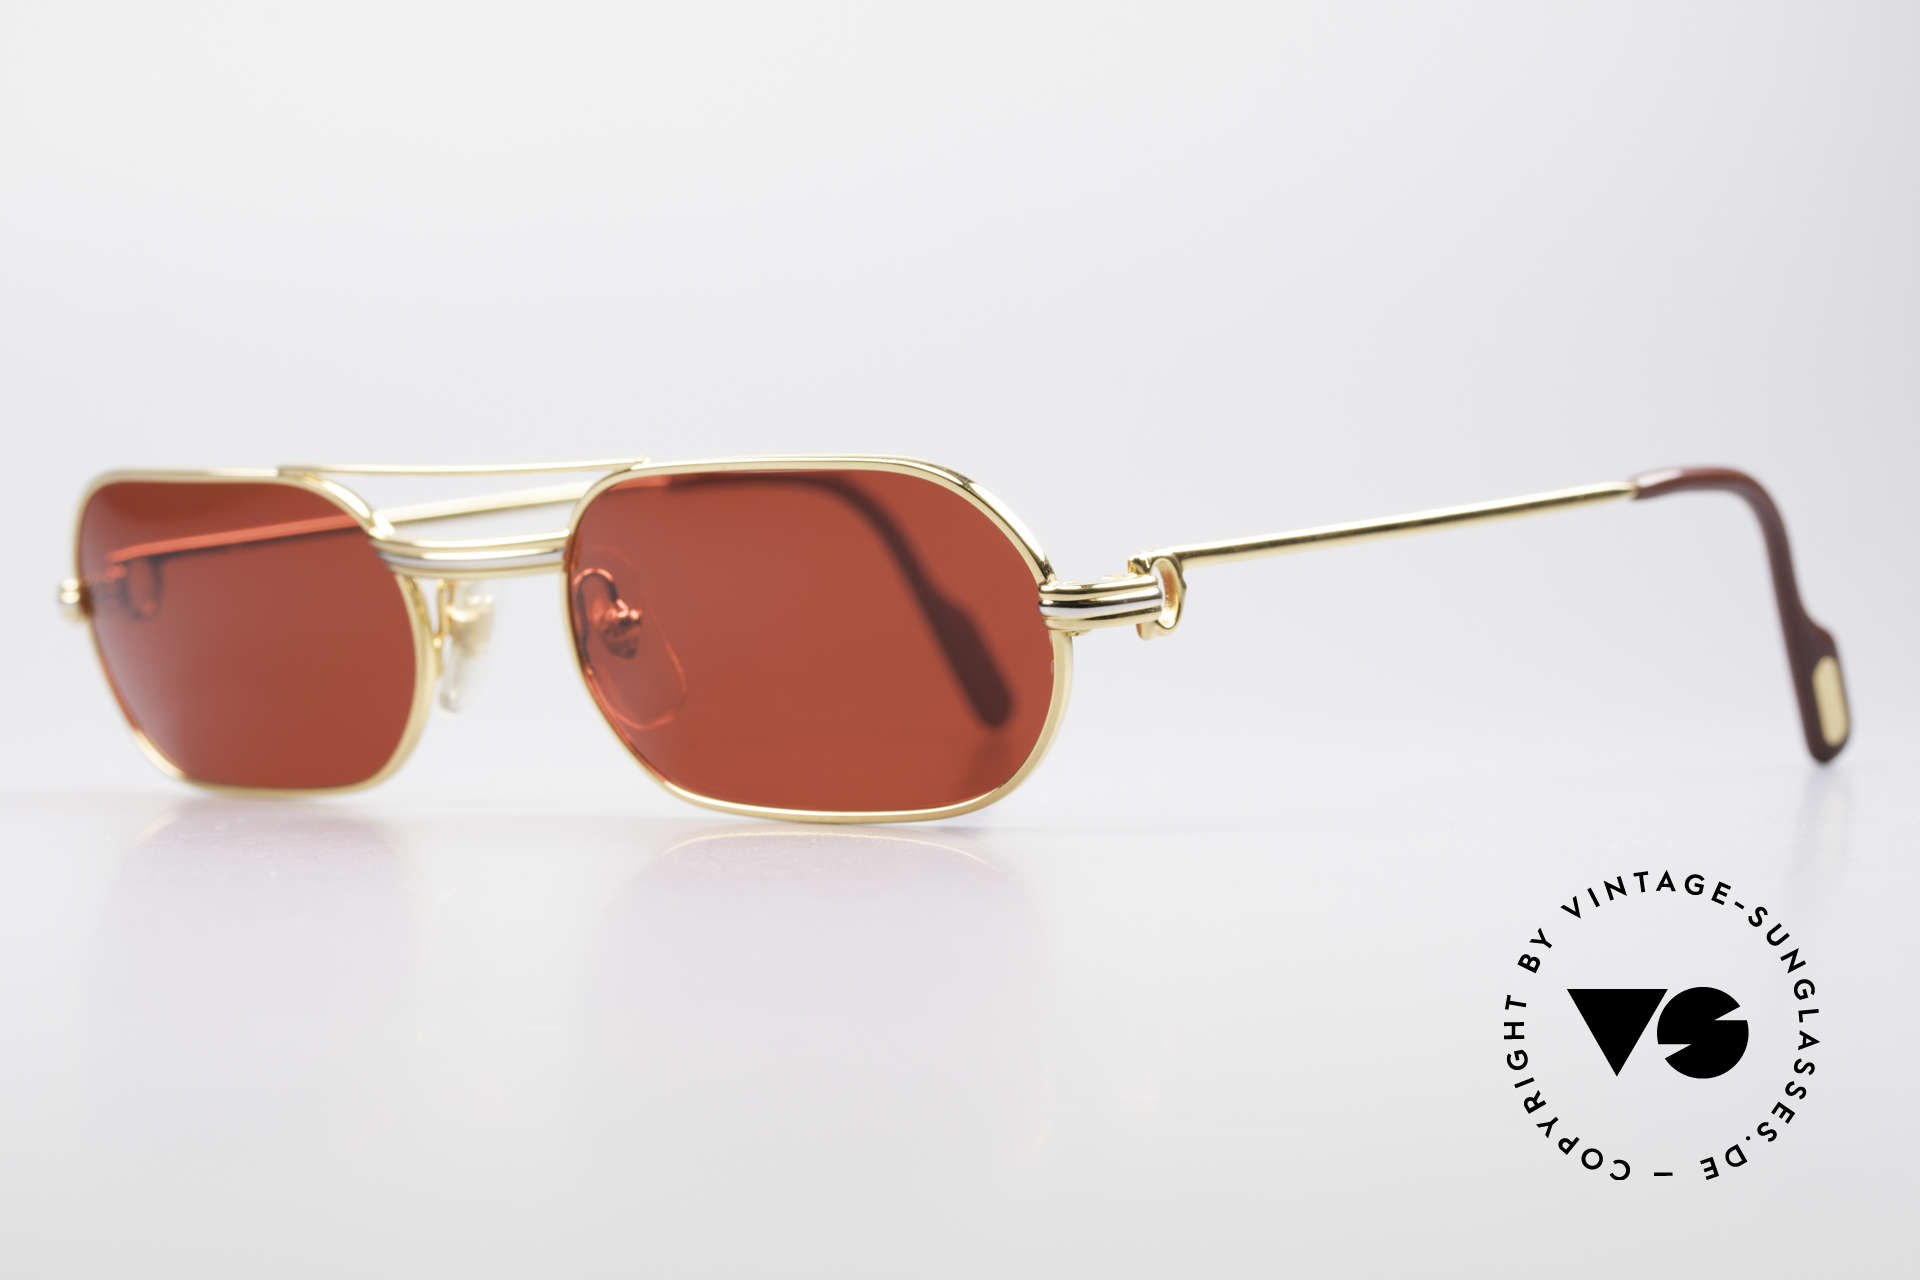 Cartier MUST LC - M 3D Red Luxury Sunglasses, 22ct gold-plated frame (like all old Cartier originals), Made for Men